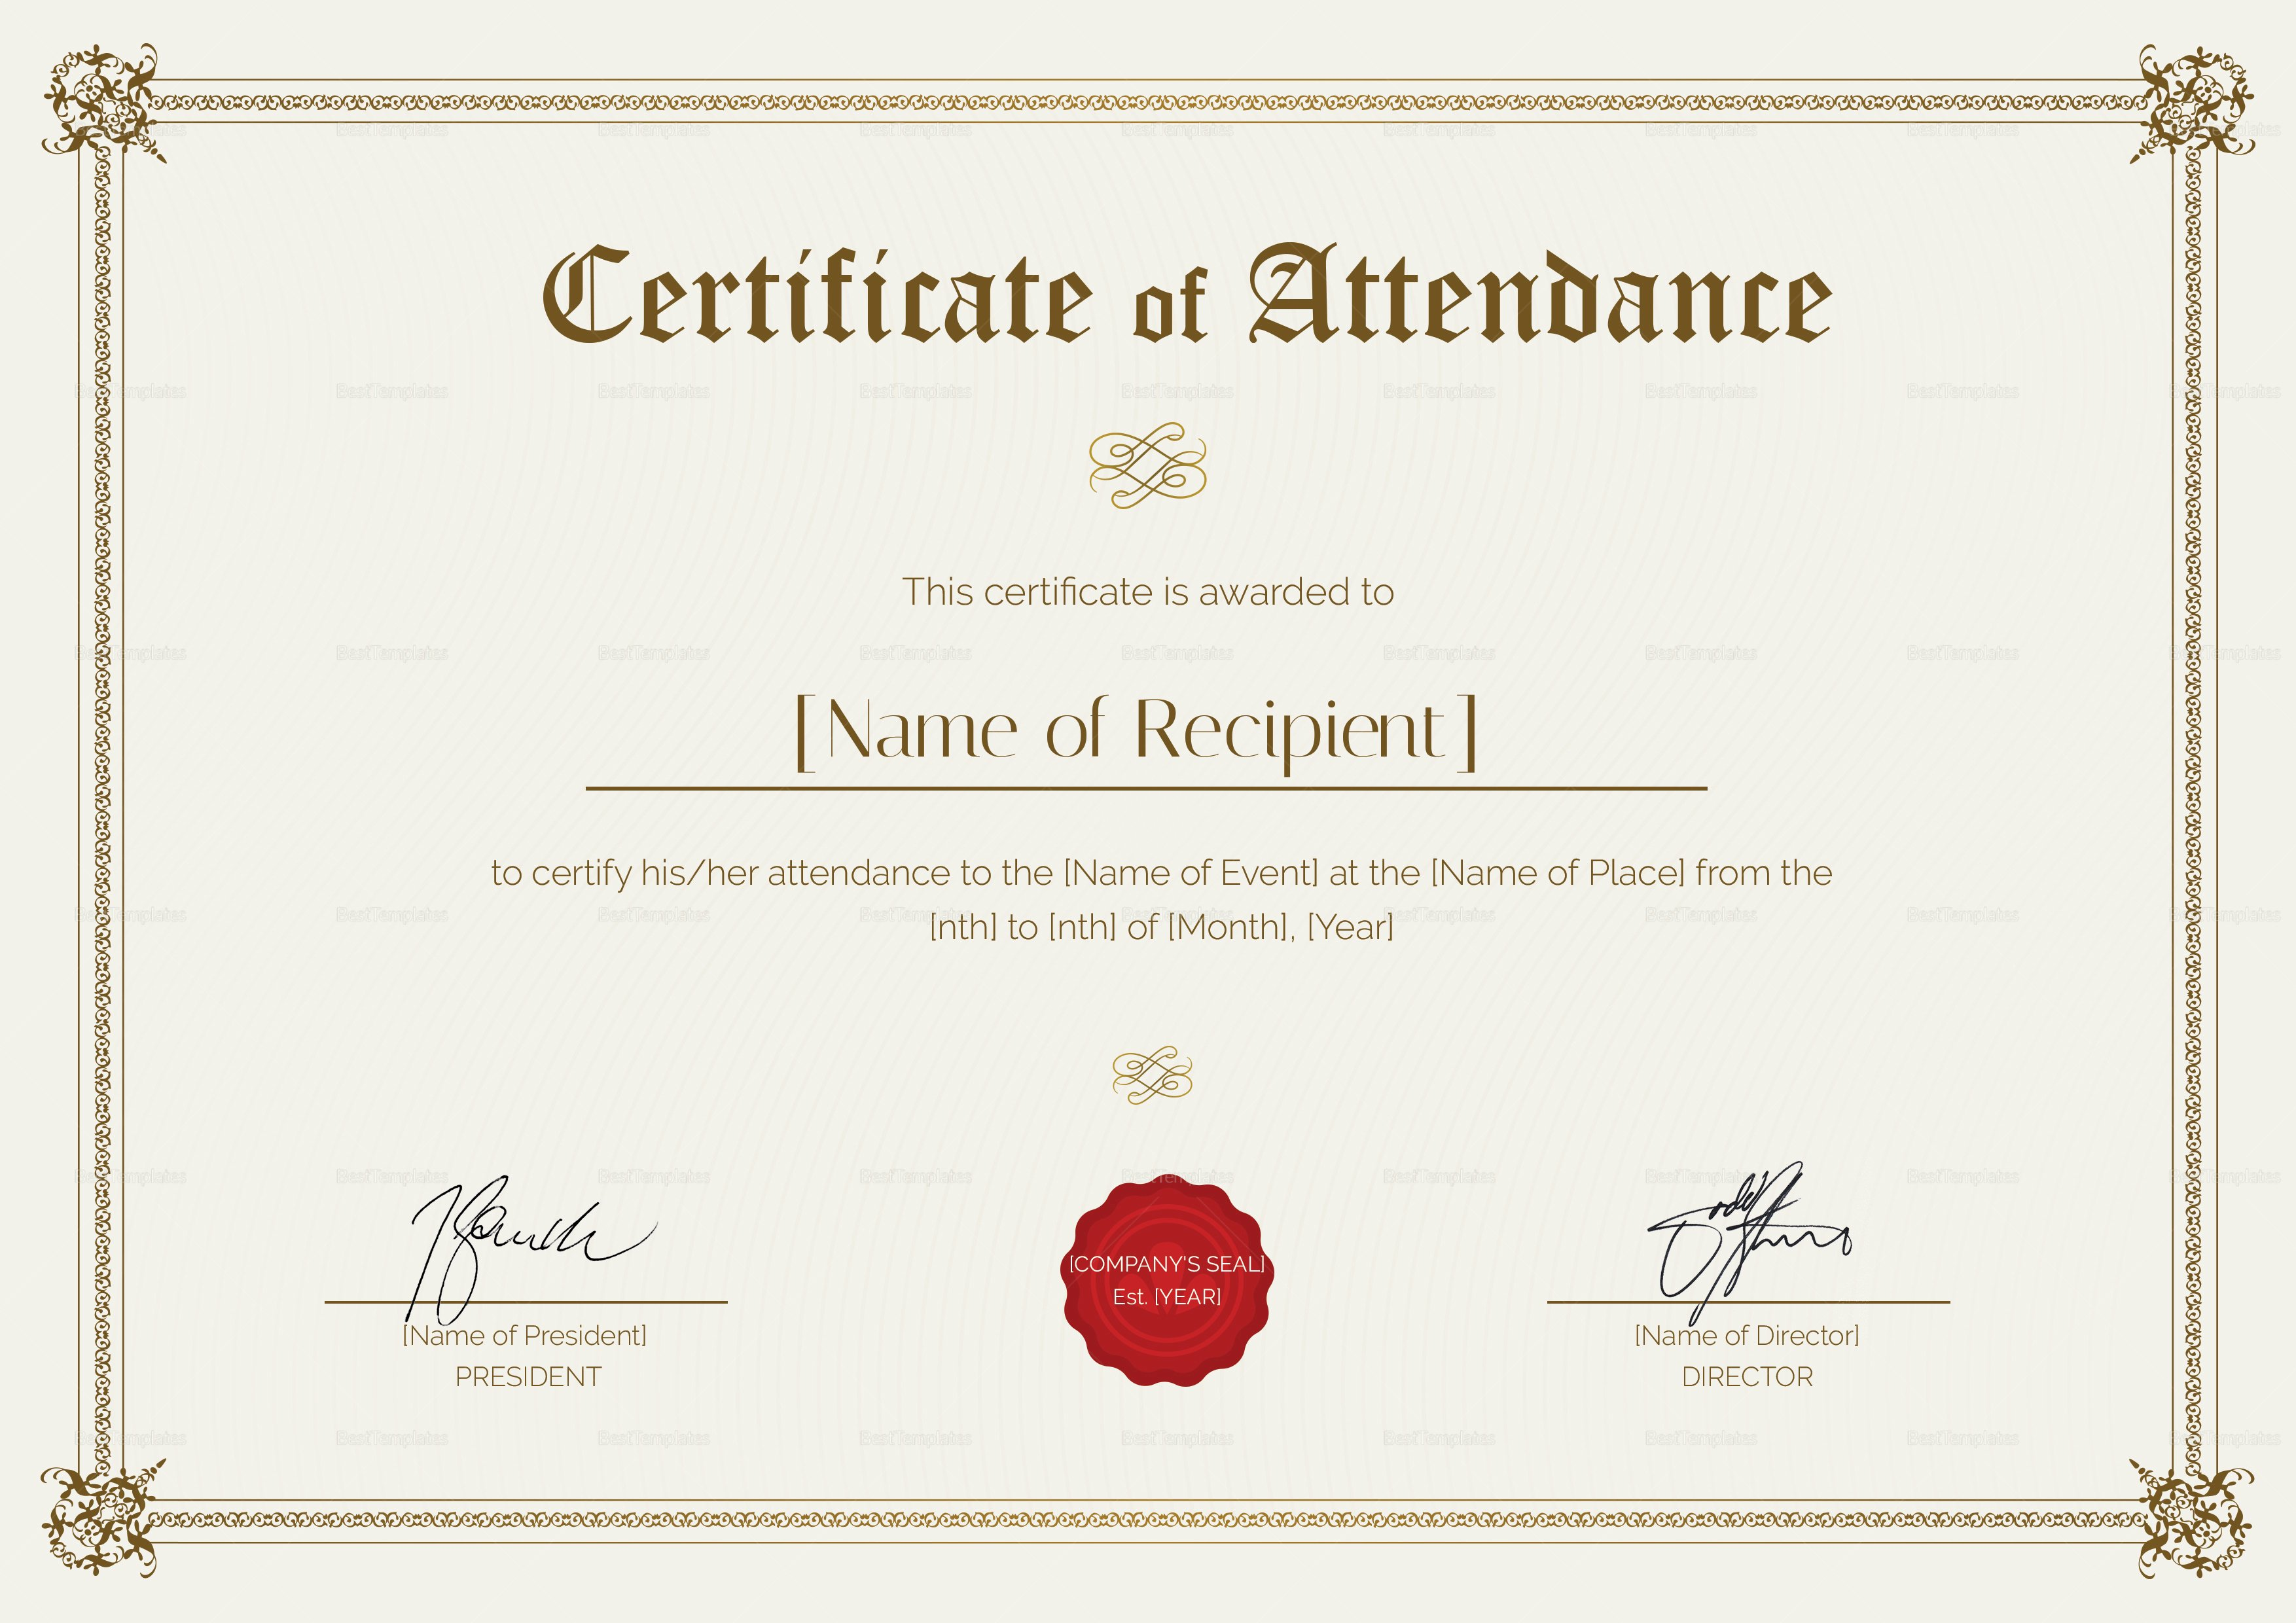 Certificate Of attendance Template Free Unique Certificate Of attendance Design Template In Psd Word